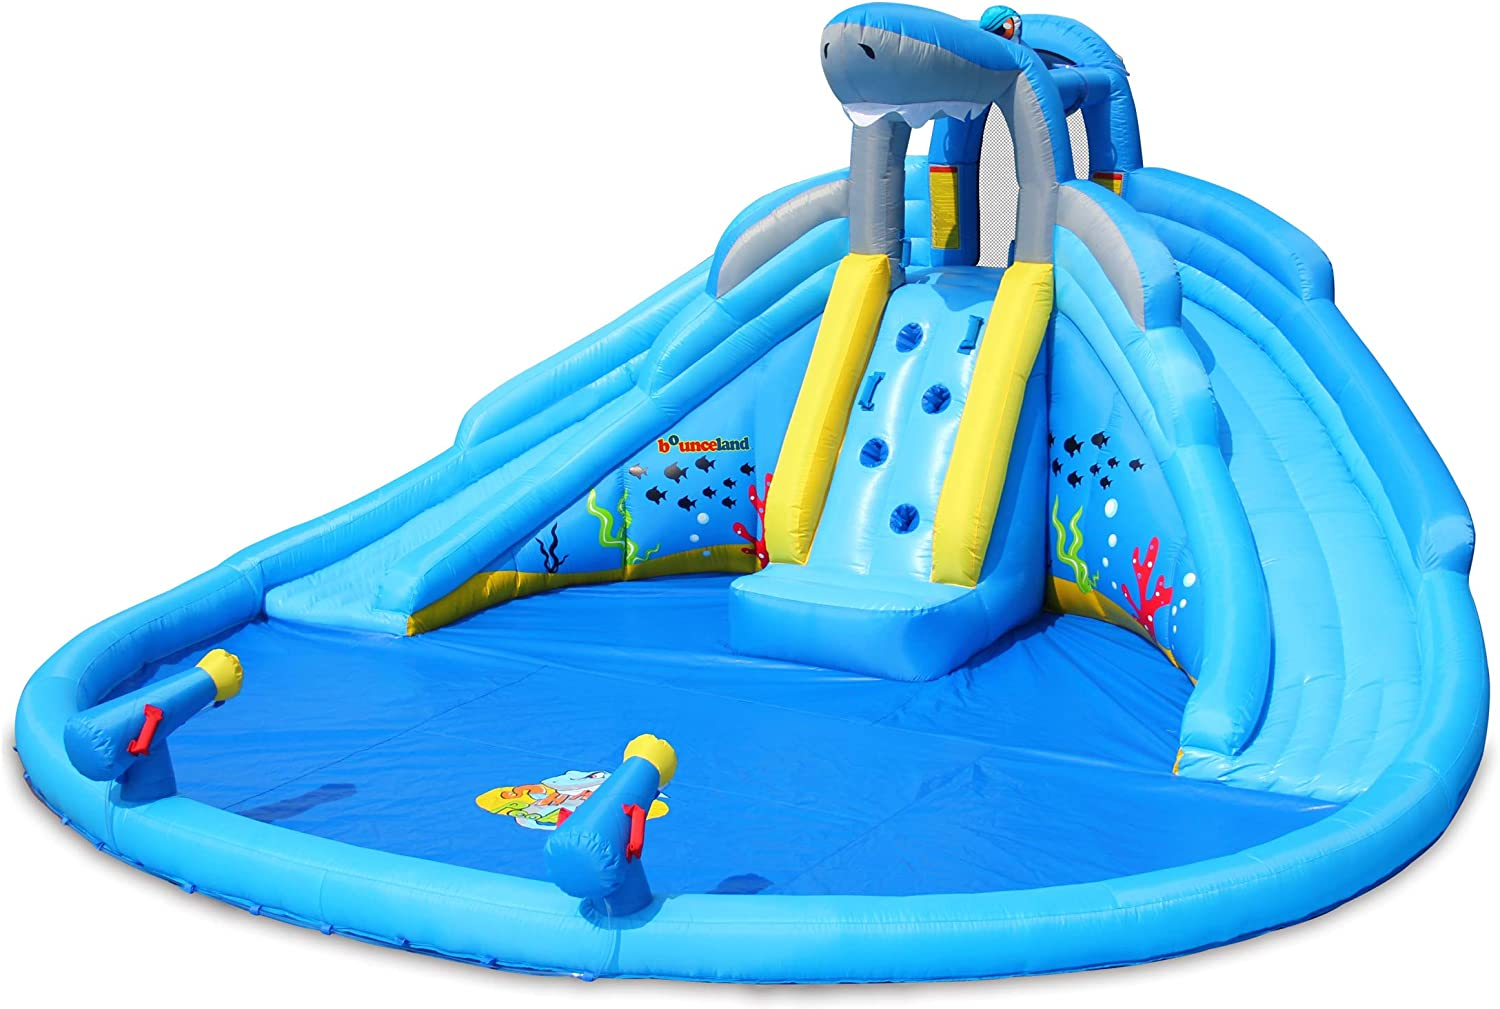 Bounceland Shark Tank Water Slide with Dual Slides and Pool, Dual Water Guns, Large Splash Pool, Dual Long Water Slides, UL Certified Blower Included, Fun Party Theme for Kids